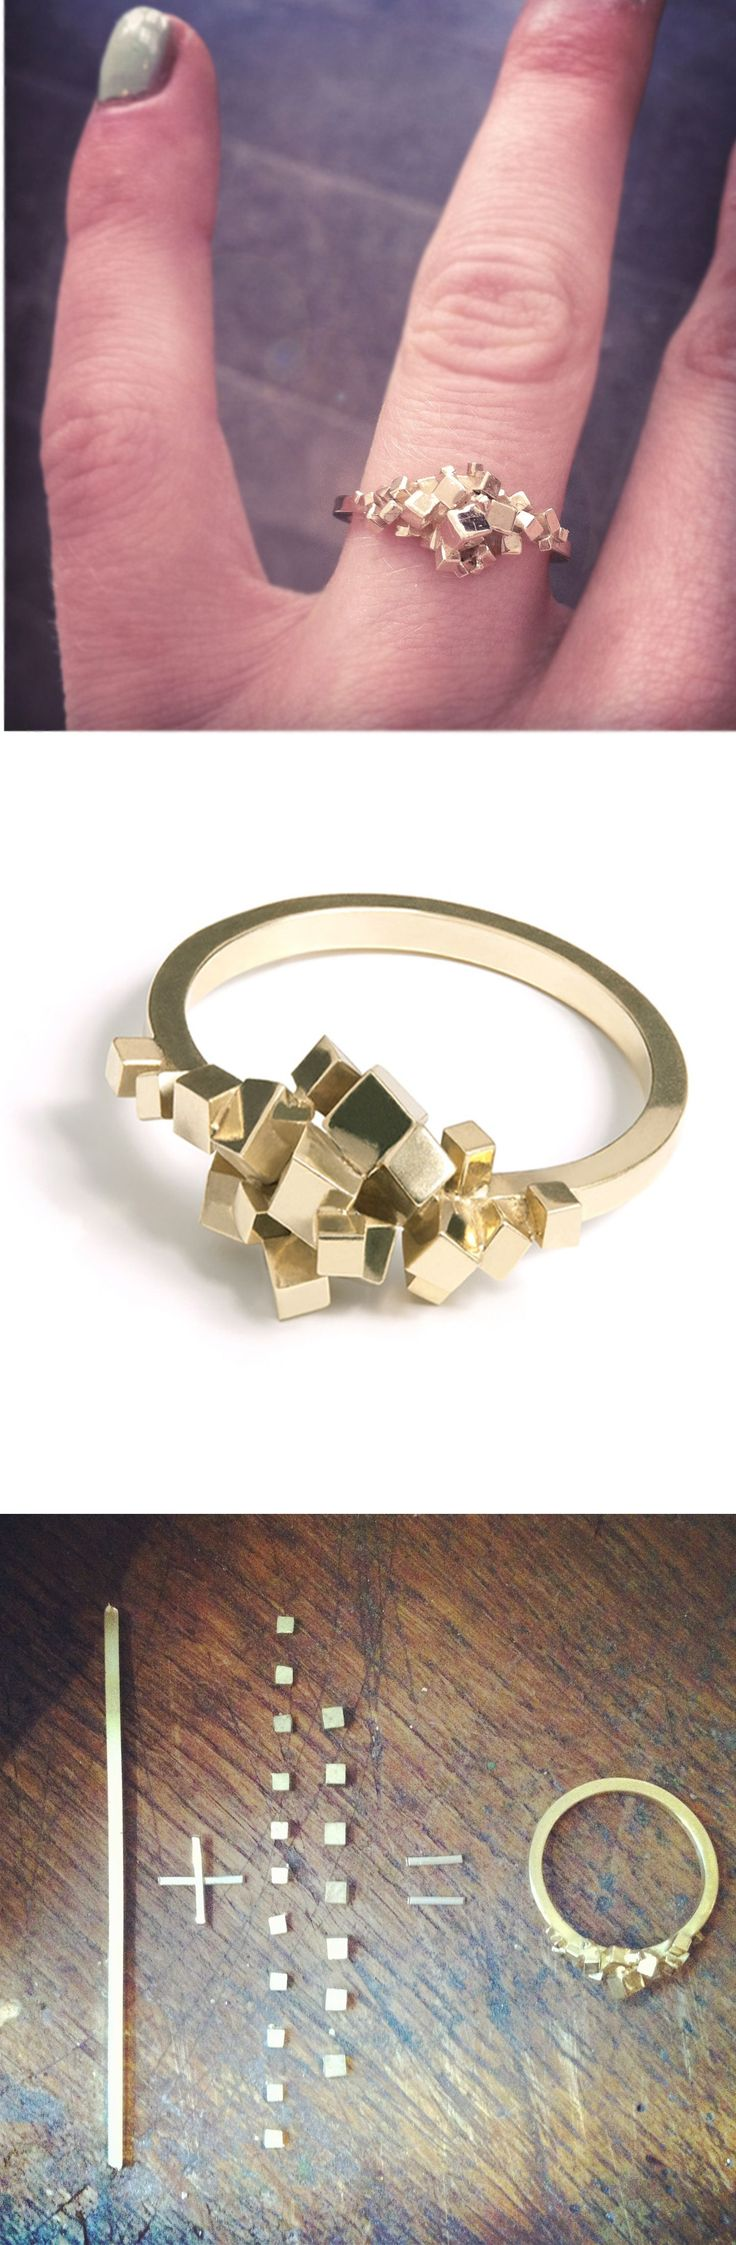 Pixel ring by Sophie Teppema - simple, gold /silver would be nice - Get the most out of buying your jewelry!